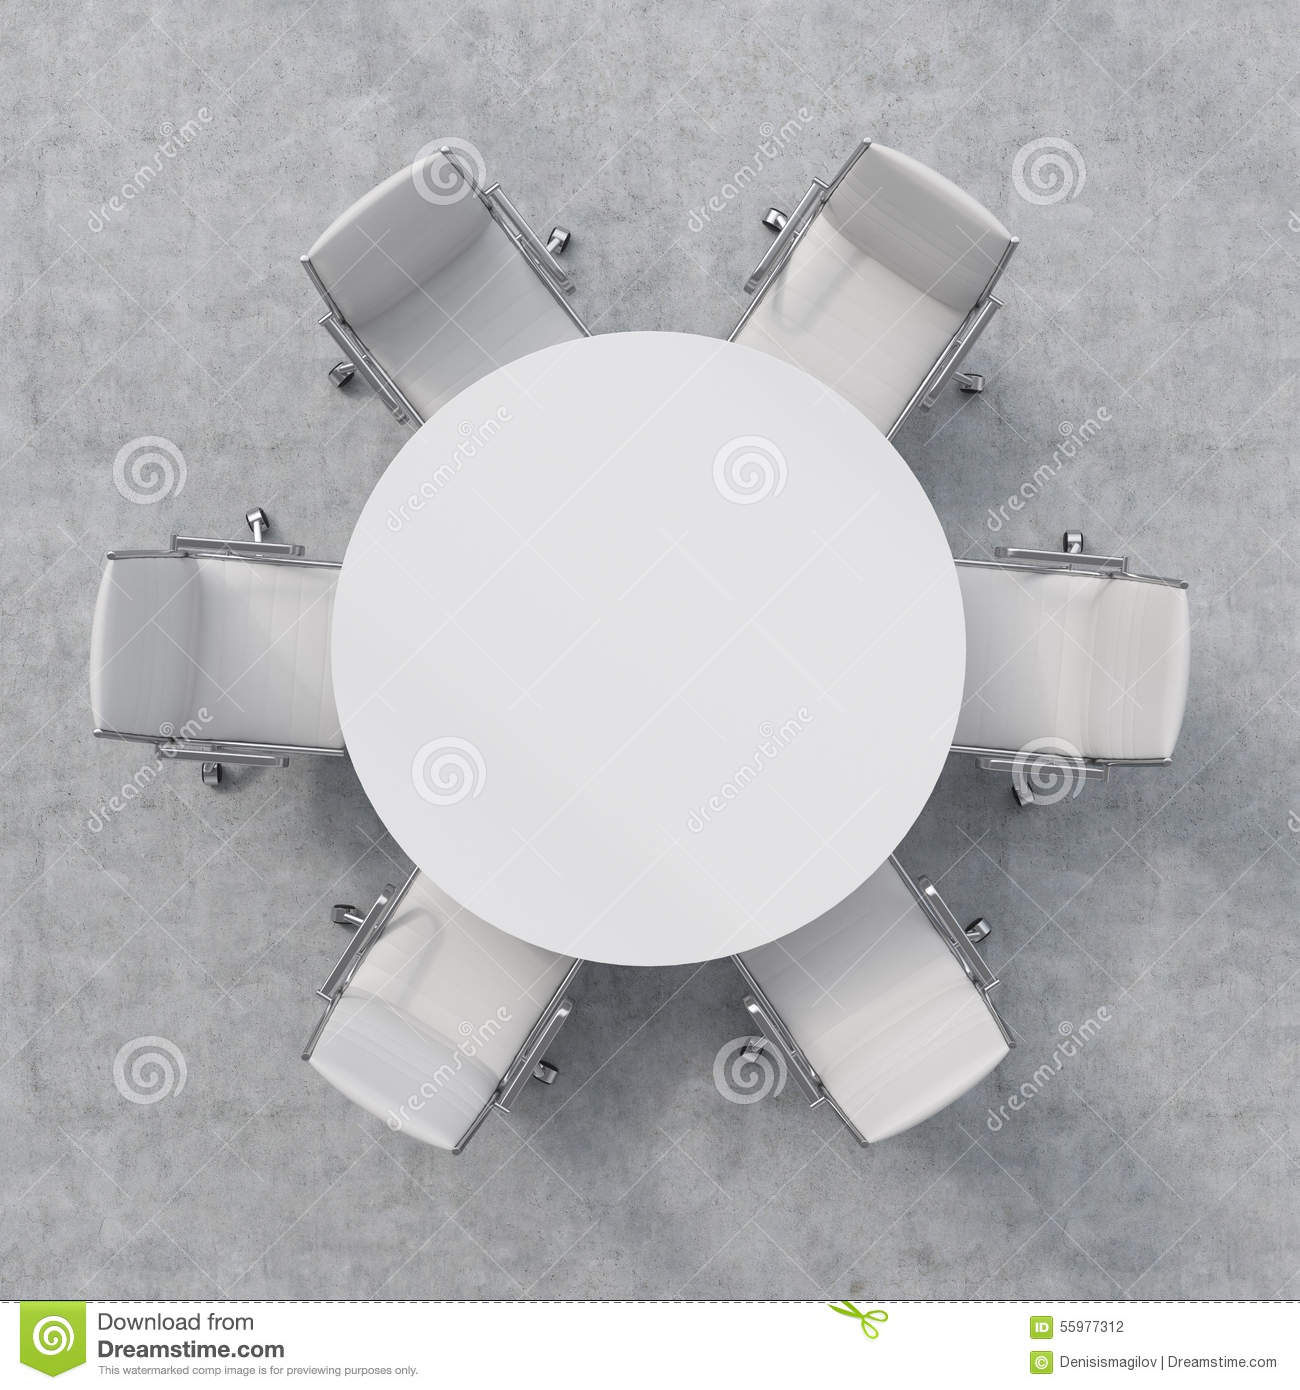 Stock Illustration Top View Of A Conference Room A White Round Table